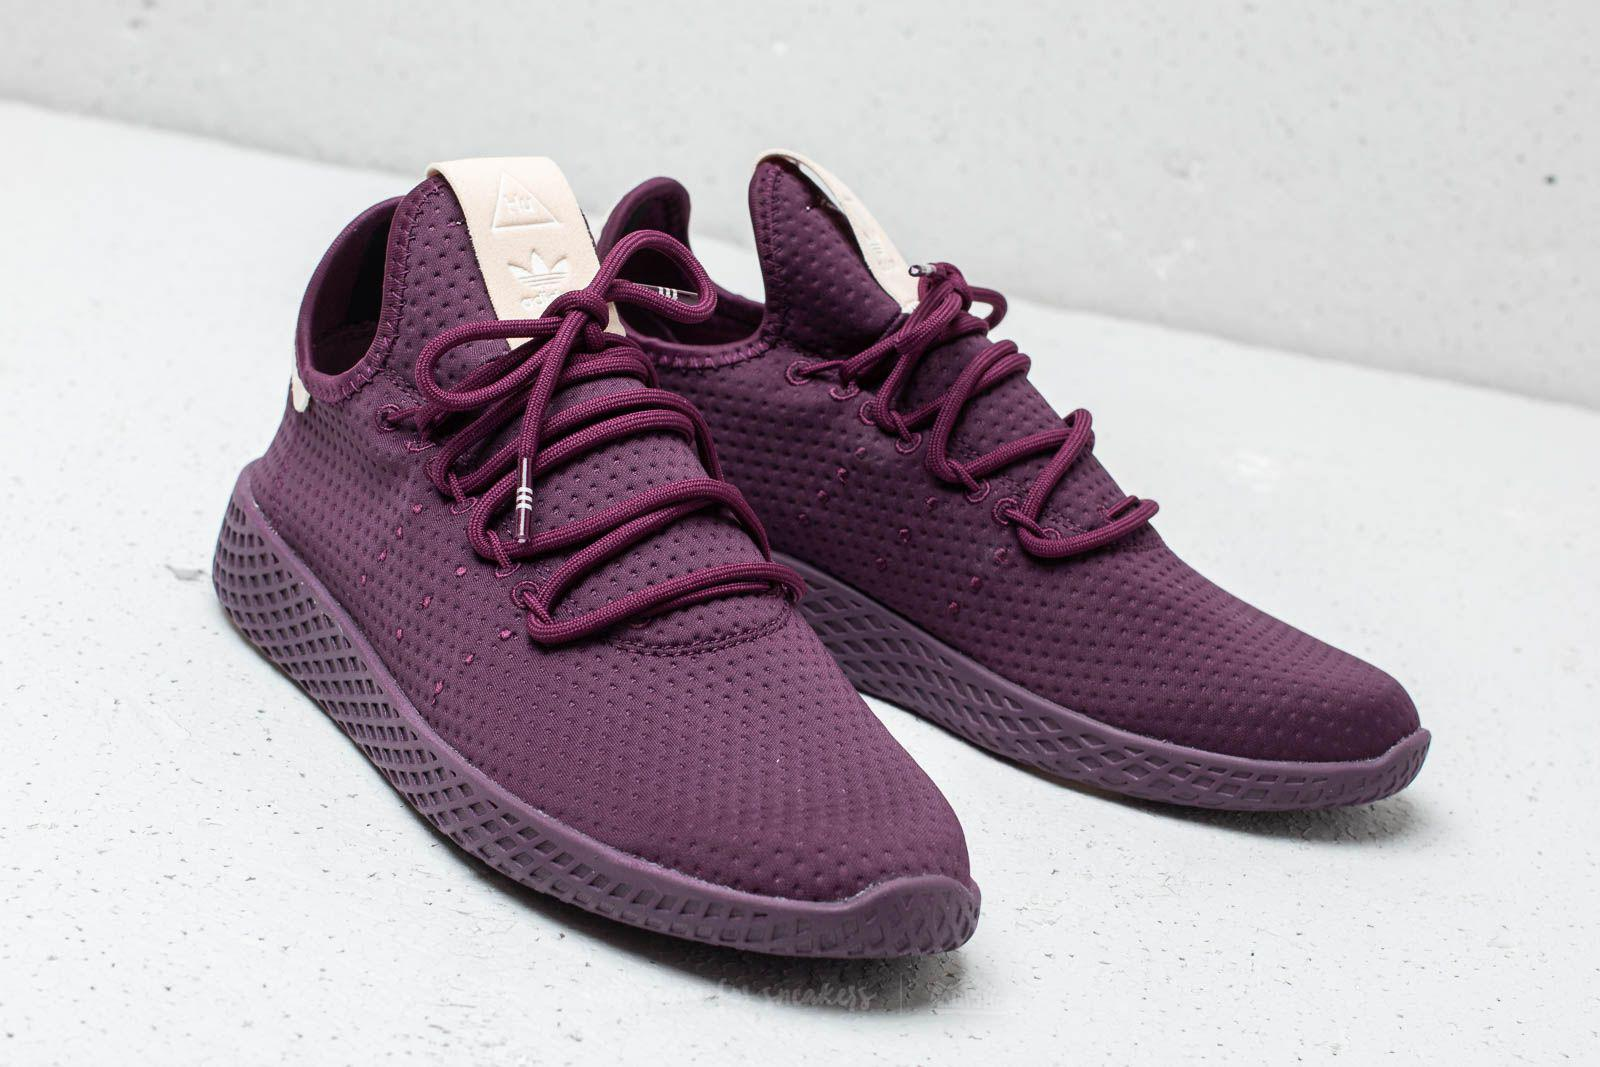 low priced 18ae4 ddf65 Lyst - adidas Originals Adidas X Pharrell Williams Tennis Hu W Red ...